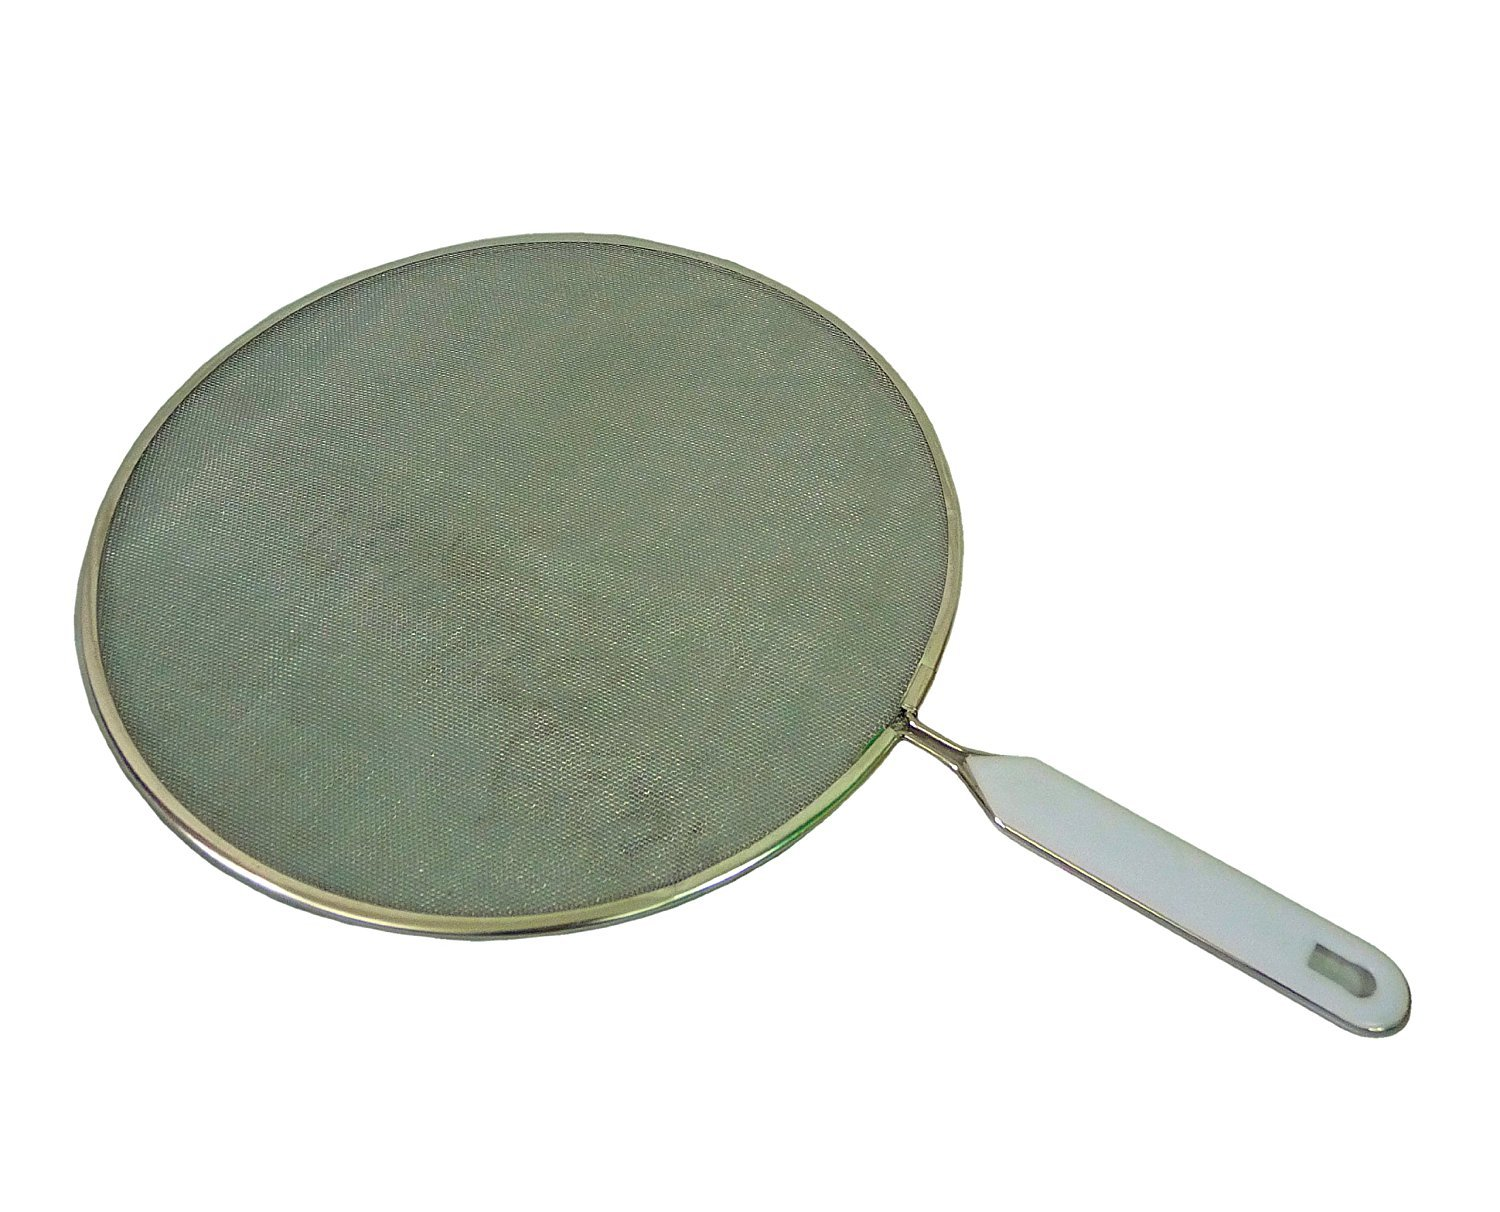 Apollo Splatter Screen Guard Frying Fry Pan Cover with Handle